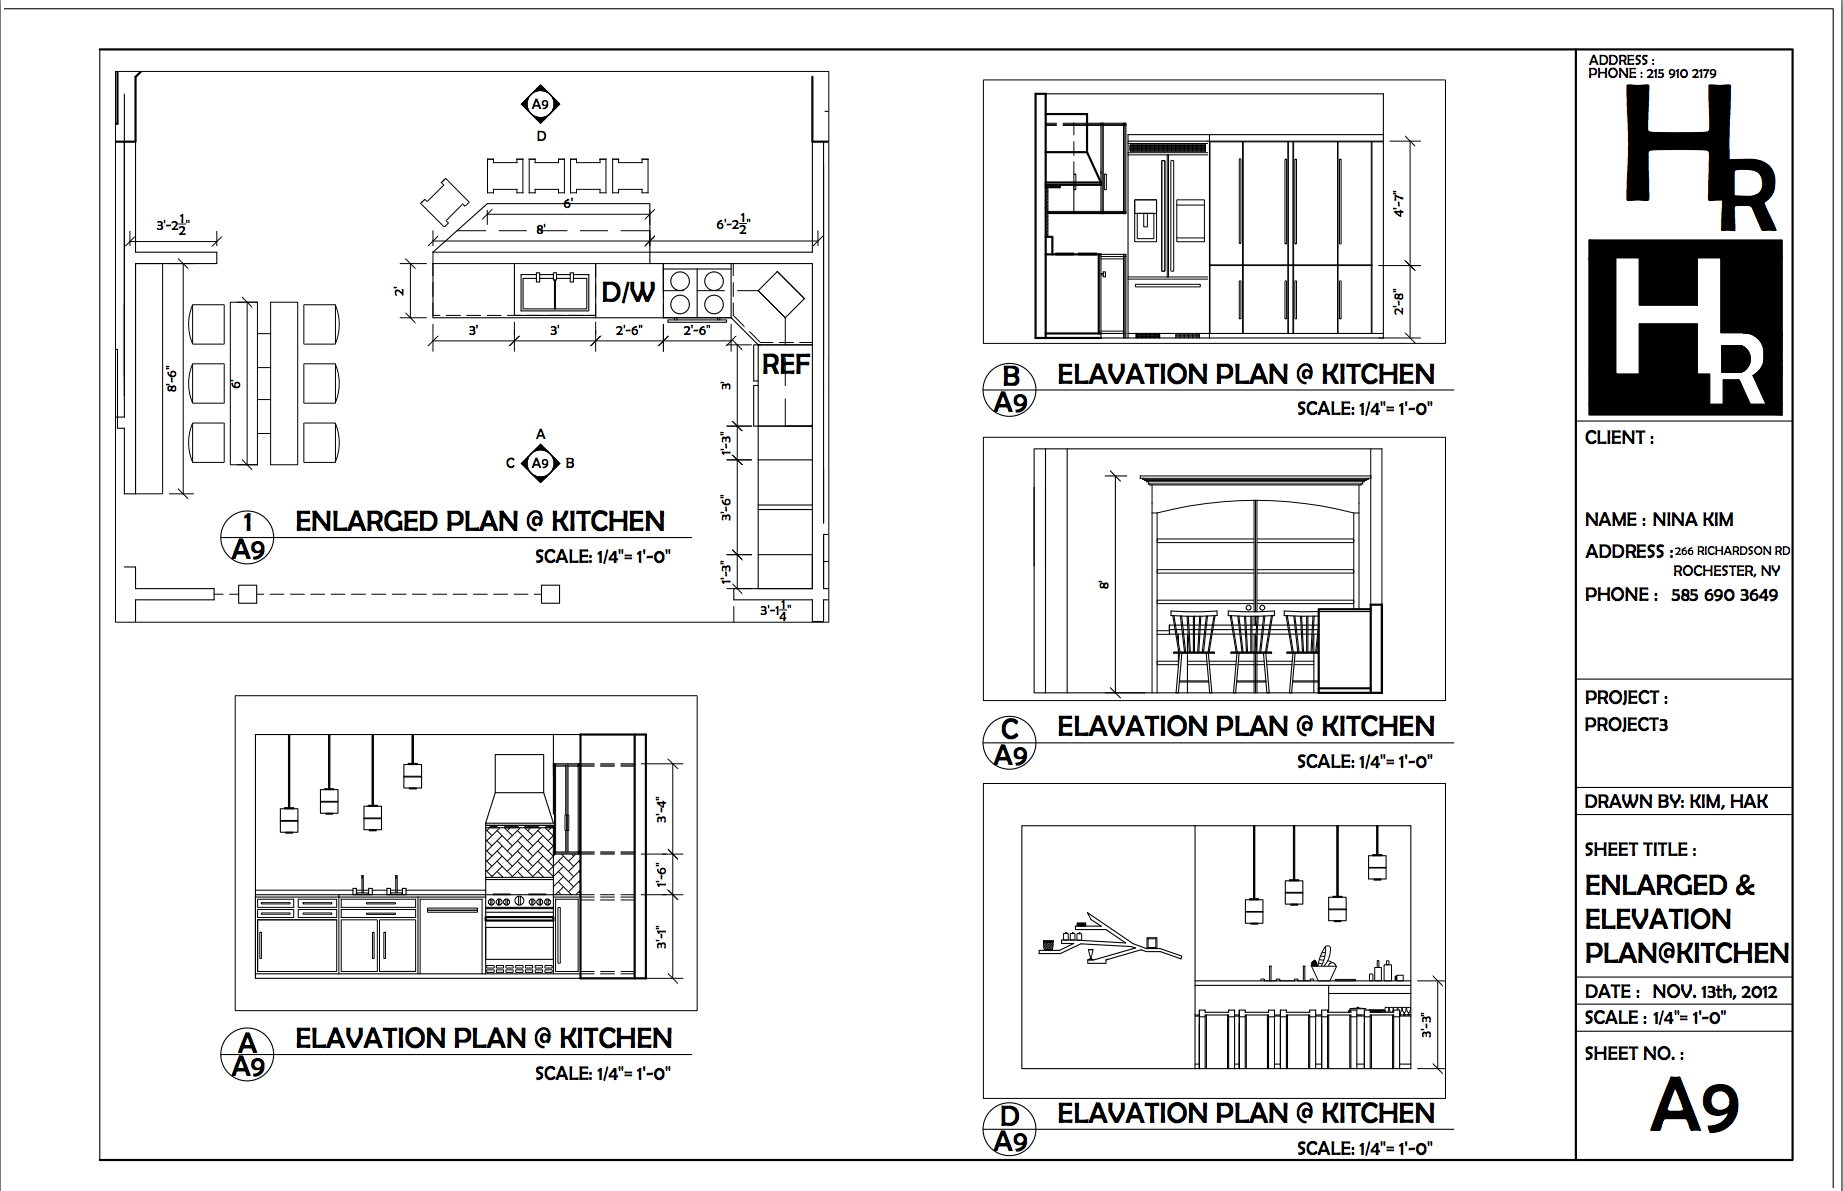 Kitchen Enlarged And Elevation Plan Portfolio